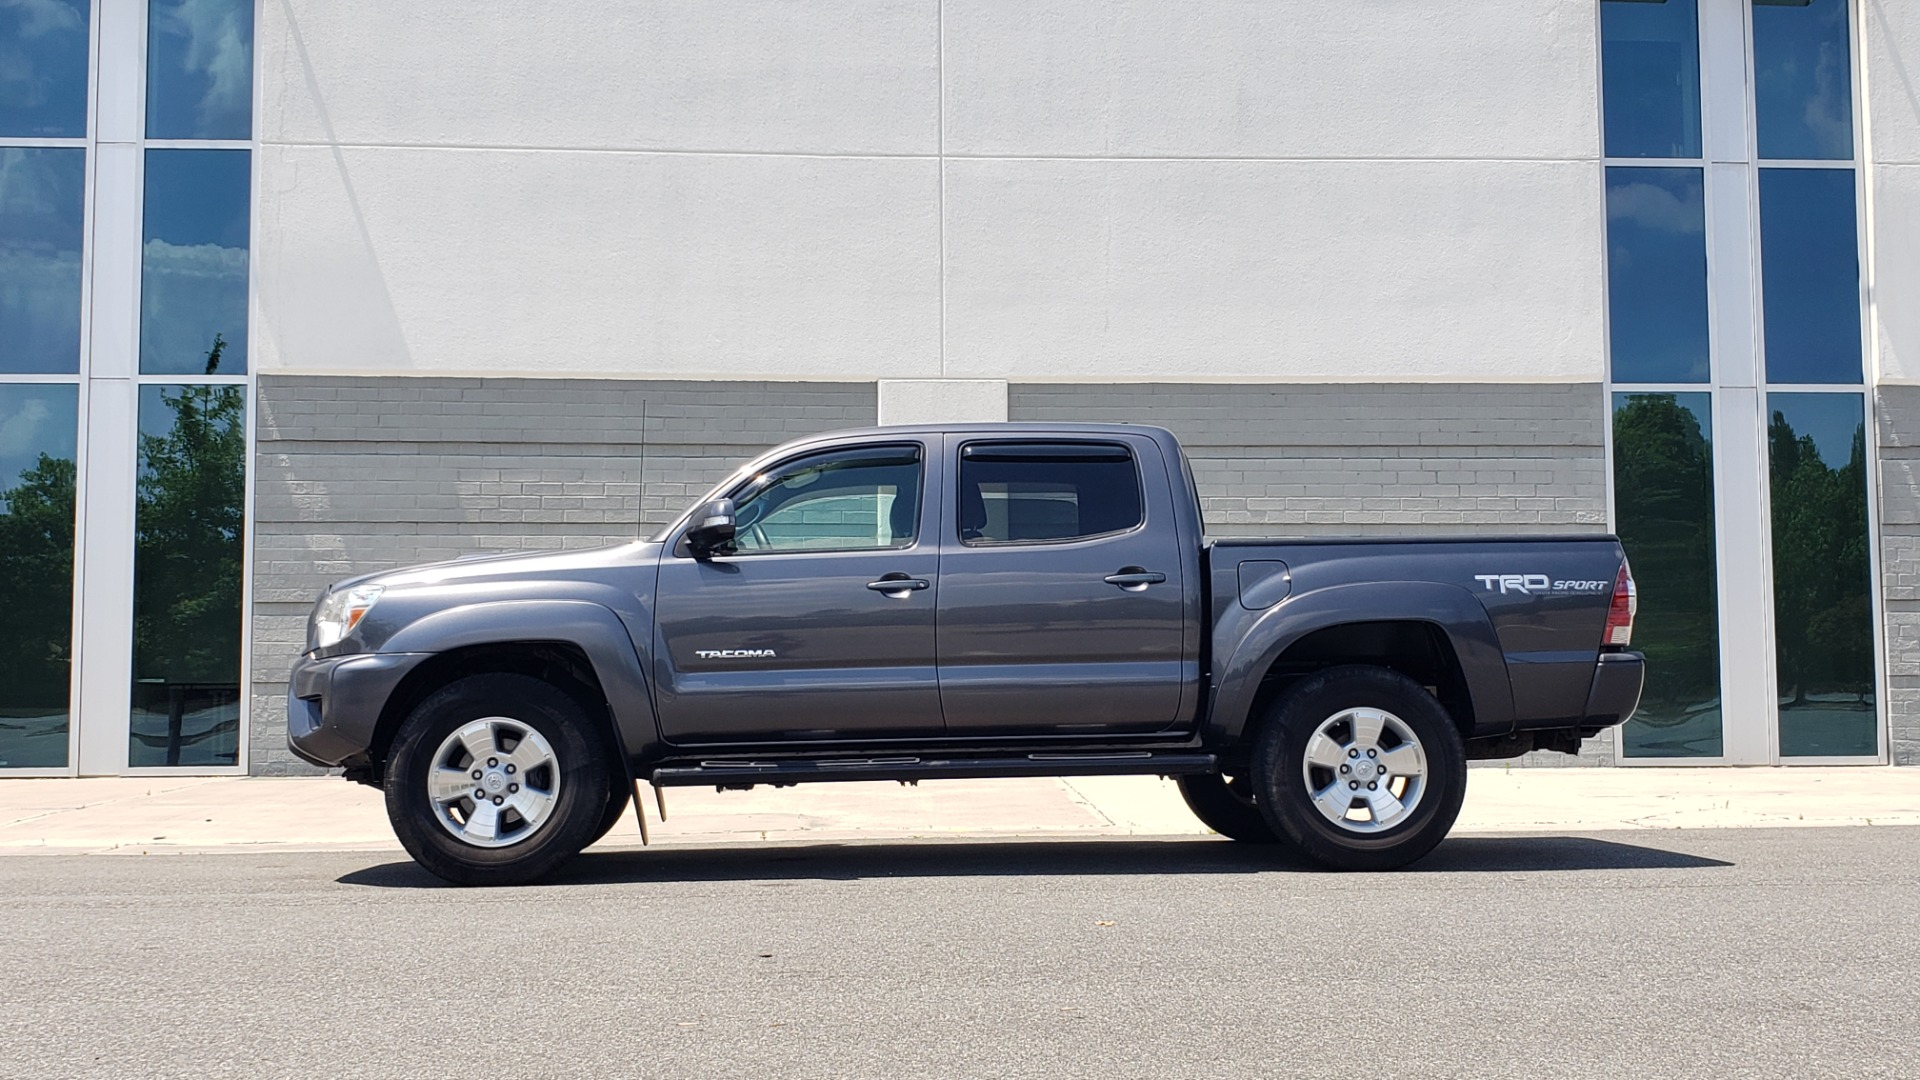 Used 2014 Toyota TACOMA PRERUNNER DOUBLECAB / TRD SPORT / V6 / 5-SPD AUTO / TOW PKG for sale $21,595 at Formula Imports in Charlotte NC 28227 2